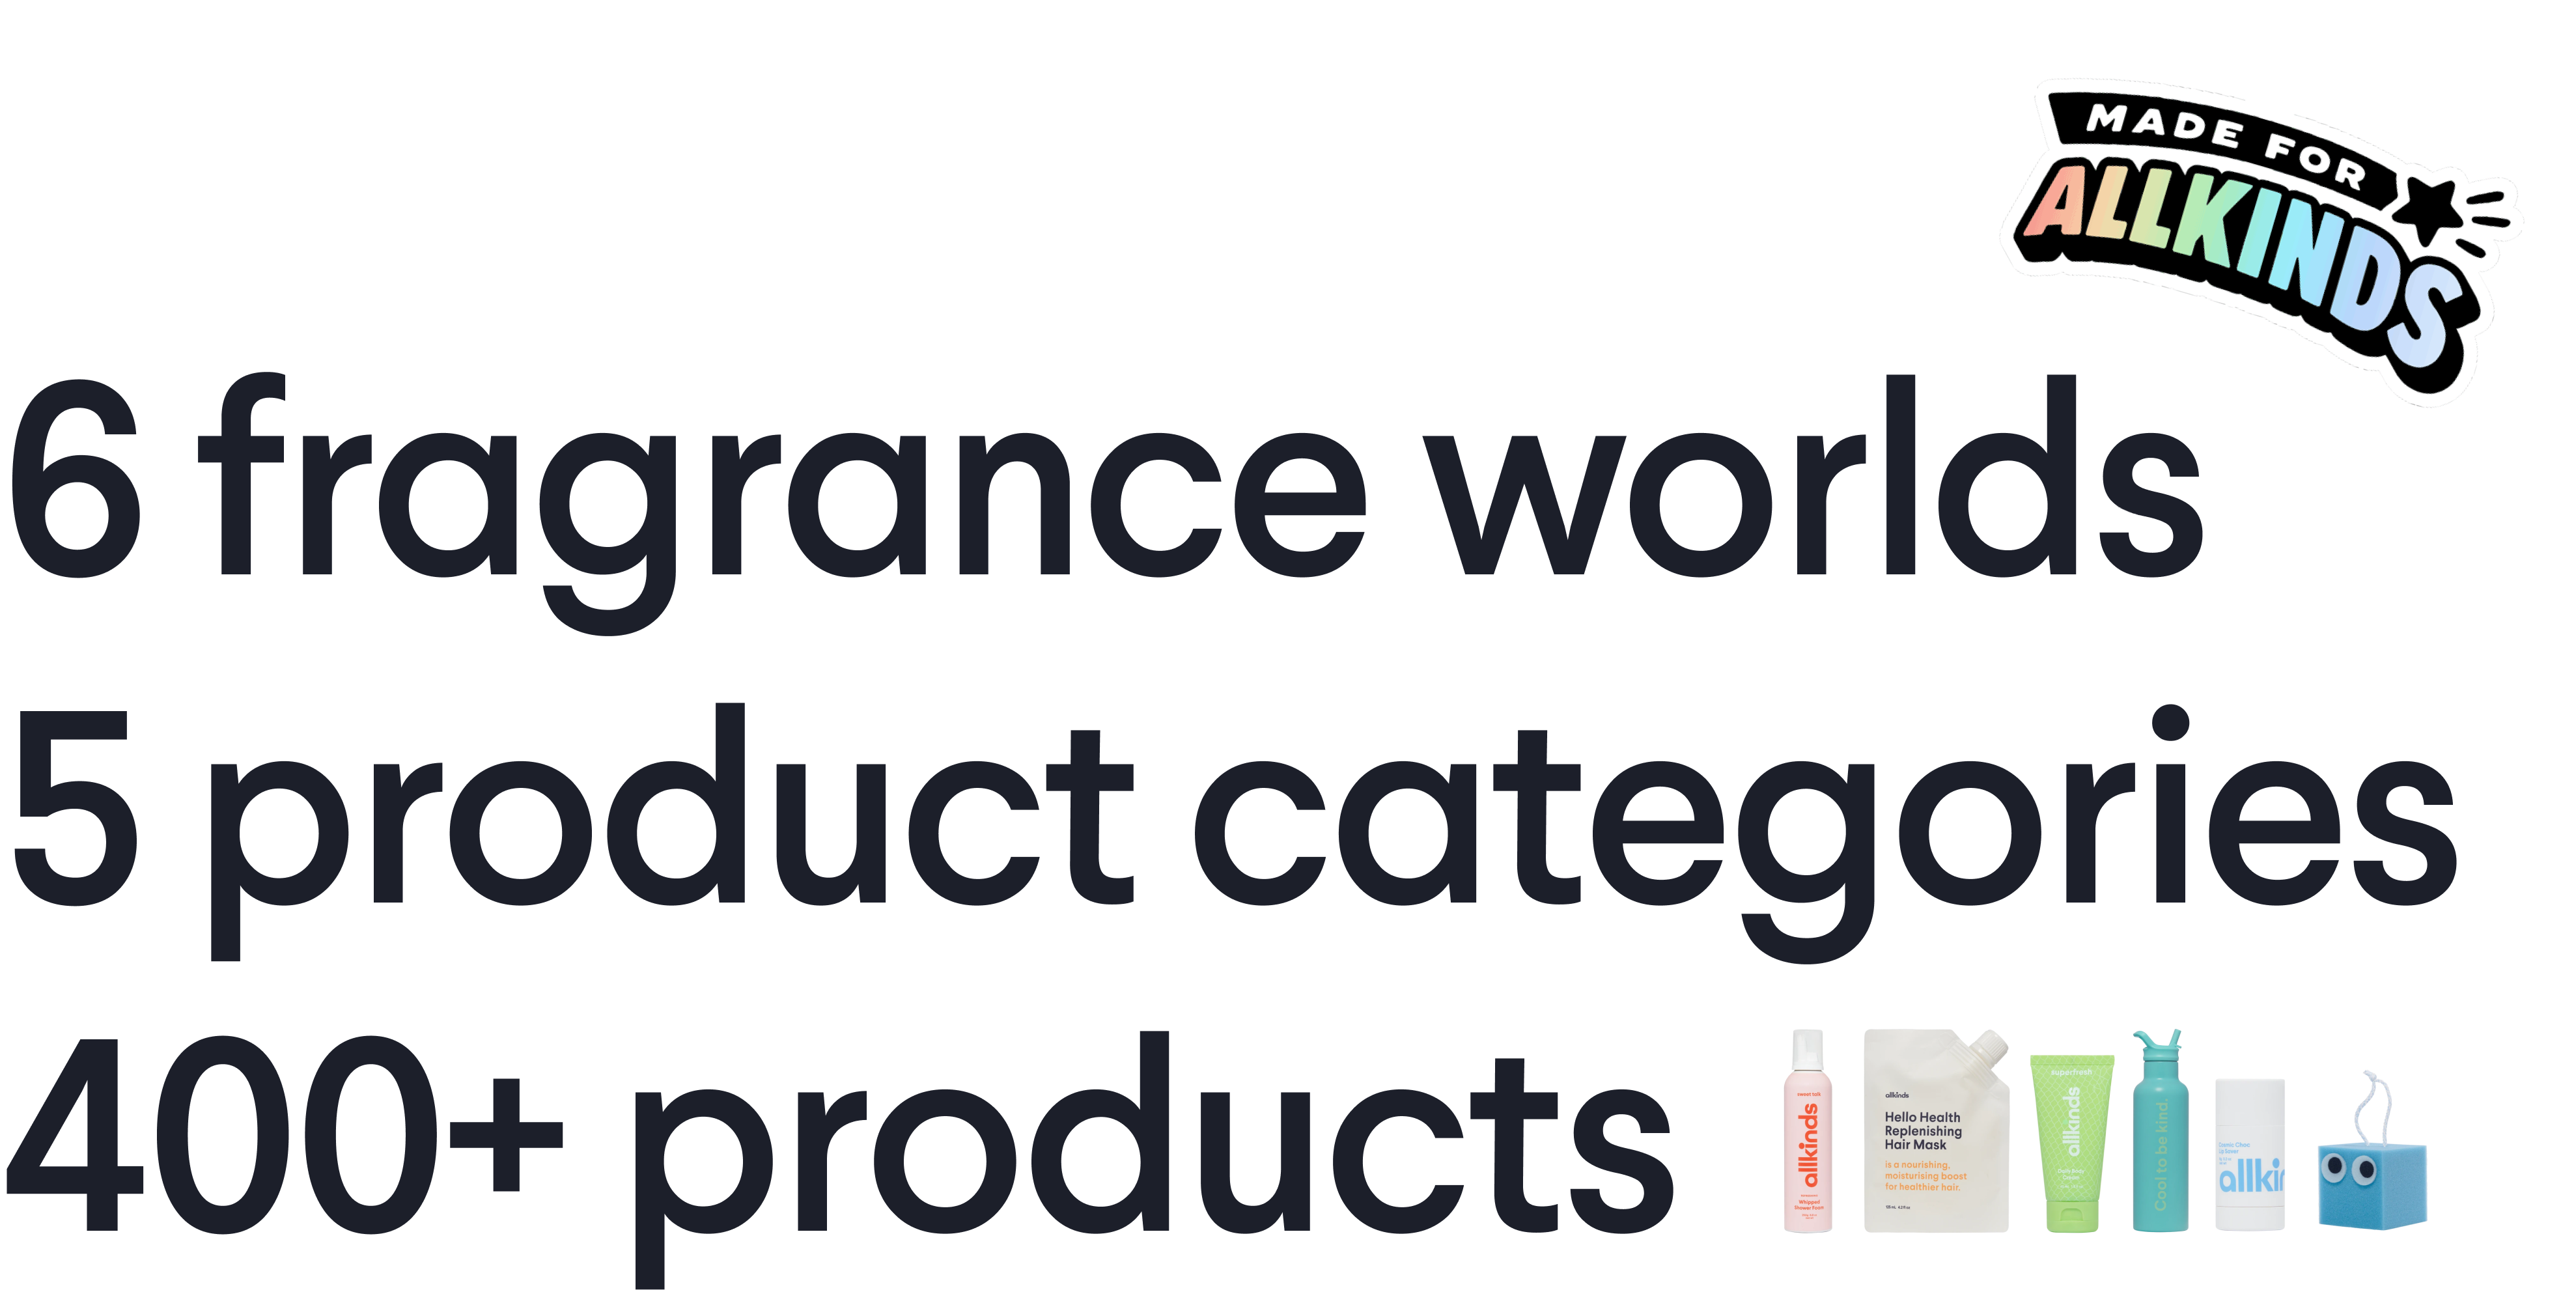 6 fragrance worlds, 5 product categories, 400+ products